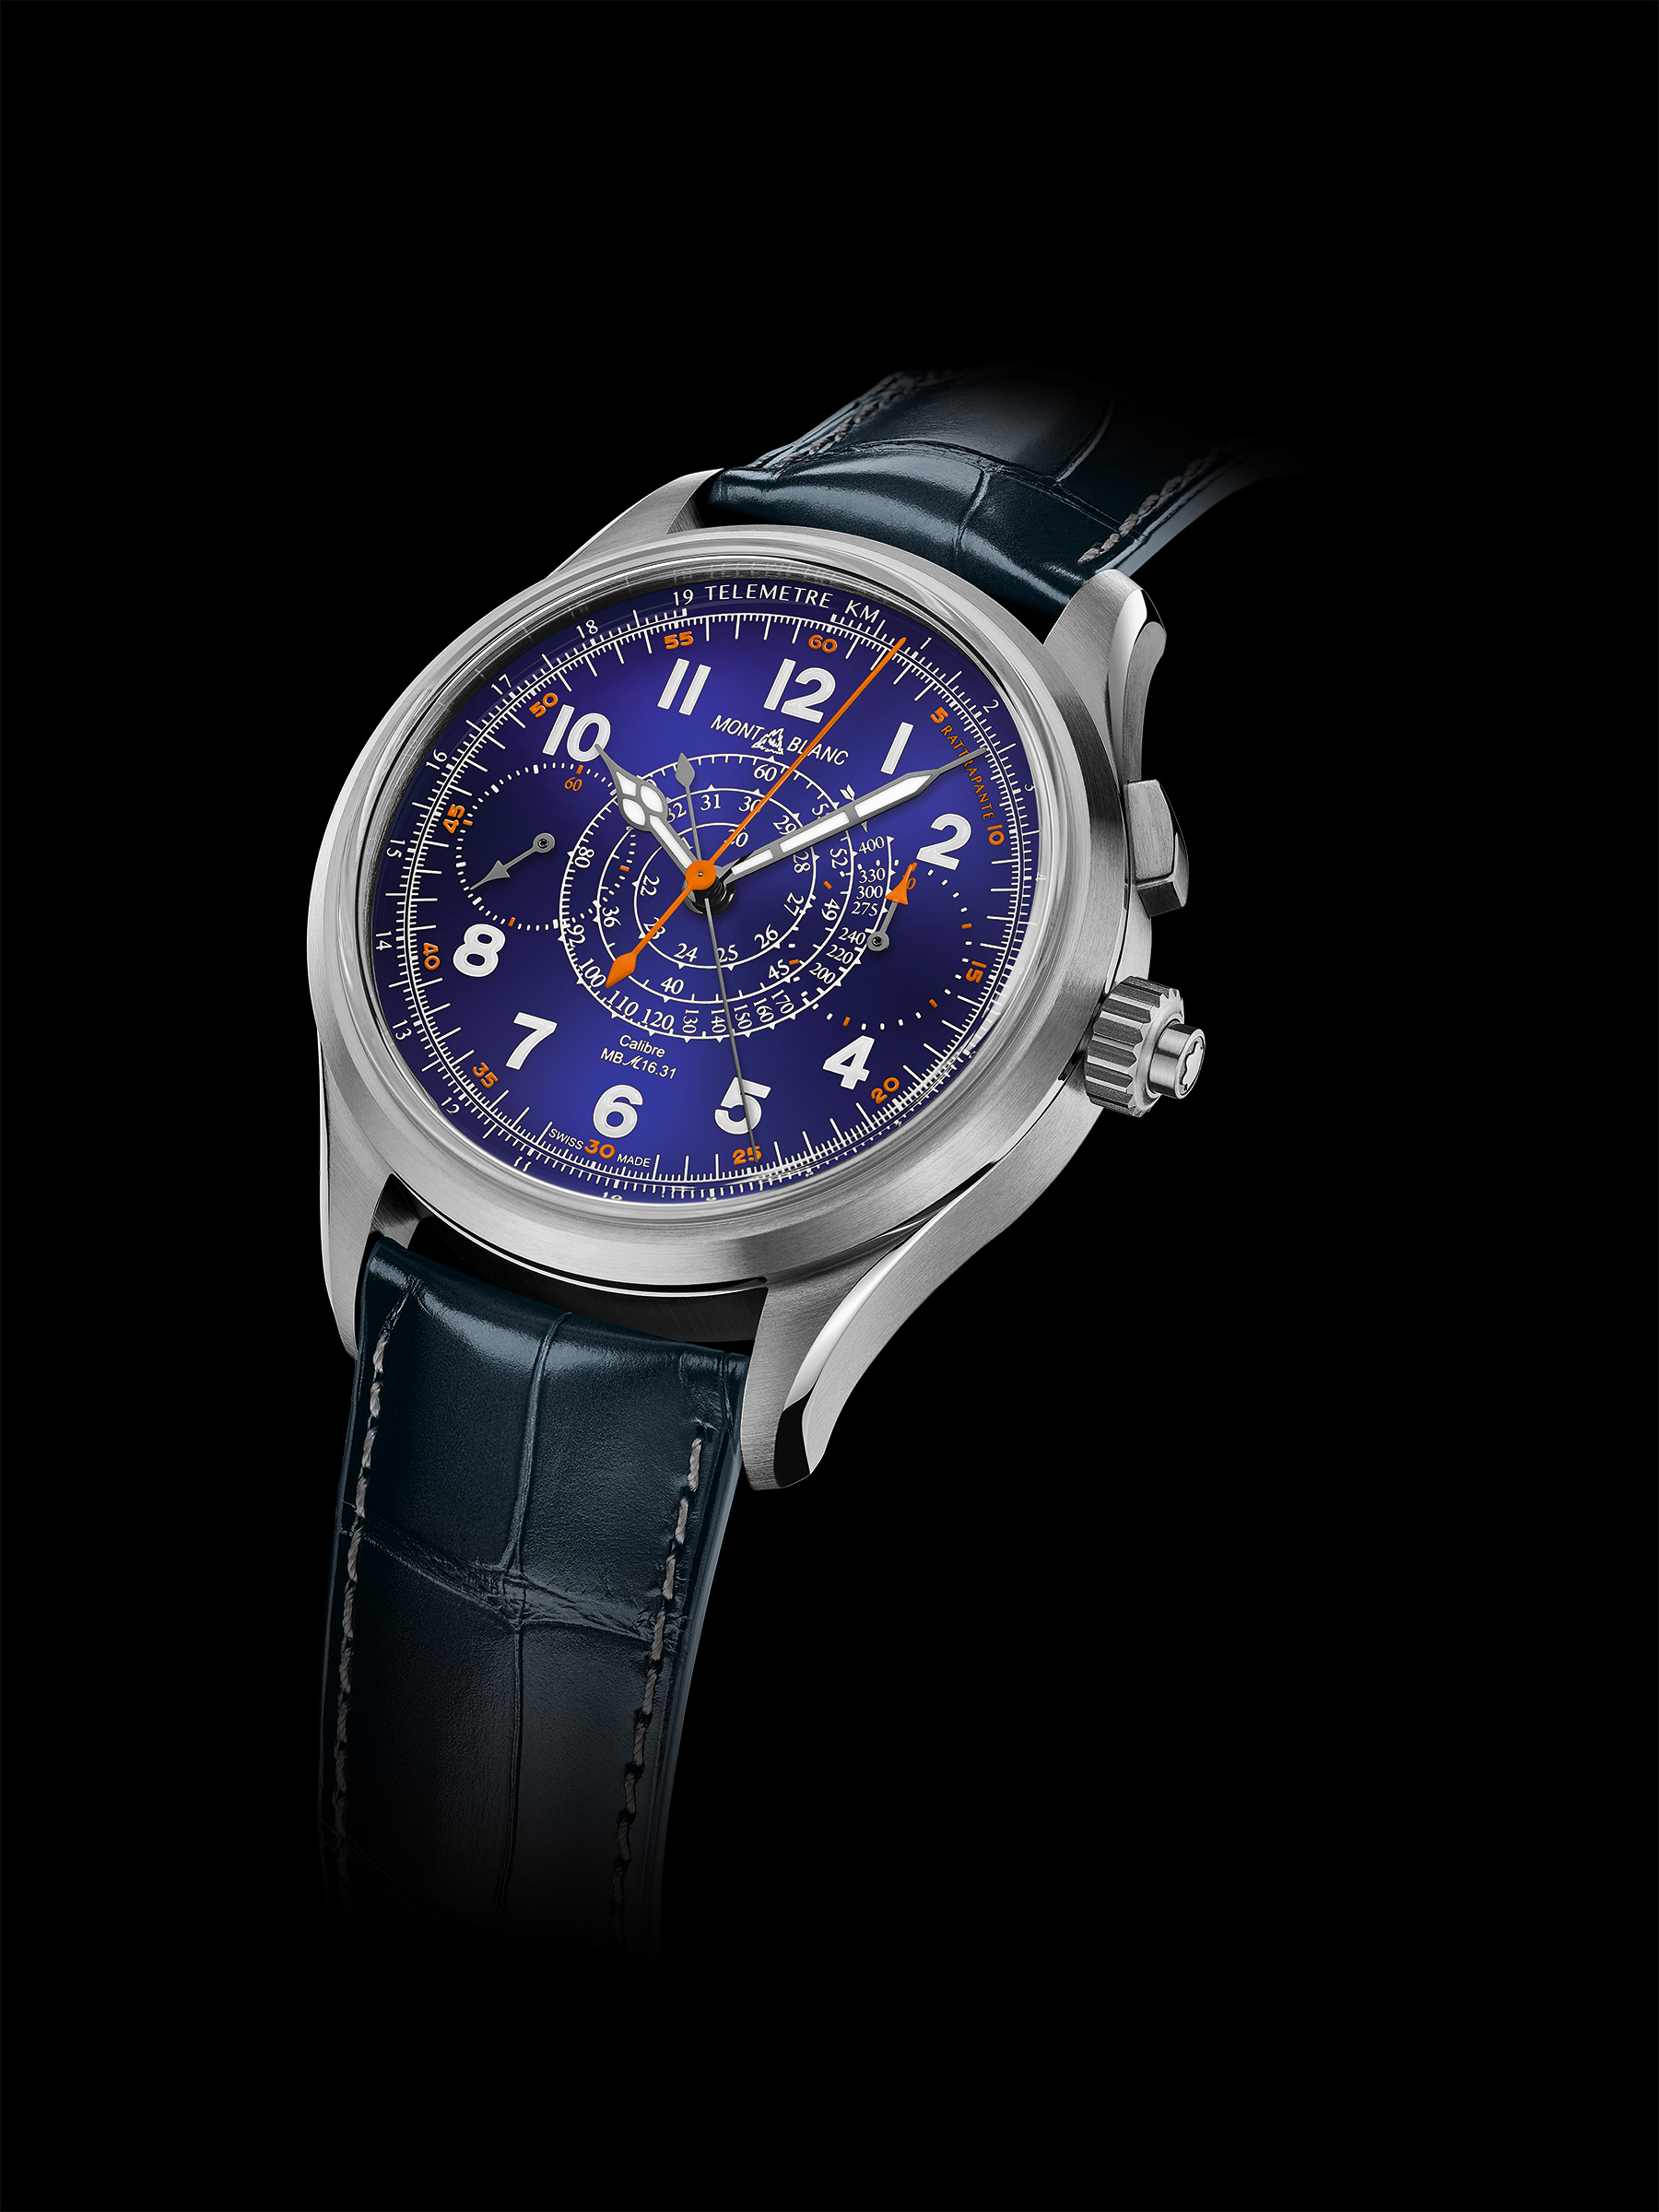 The Montblanc 1858 Split Second Chronograph has all the right touches